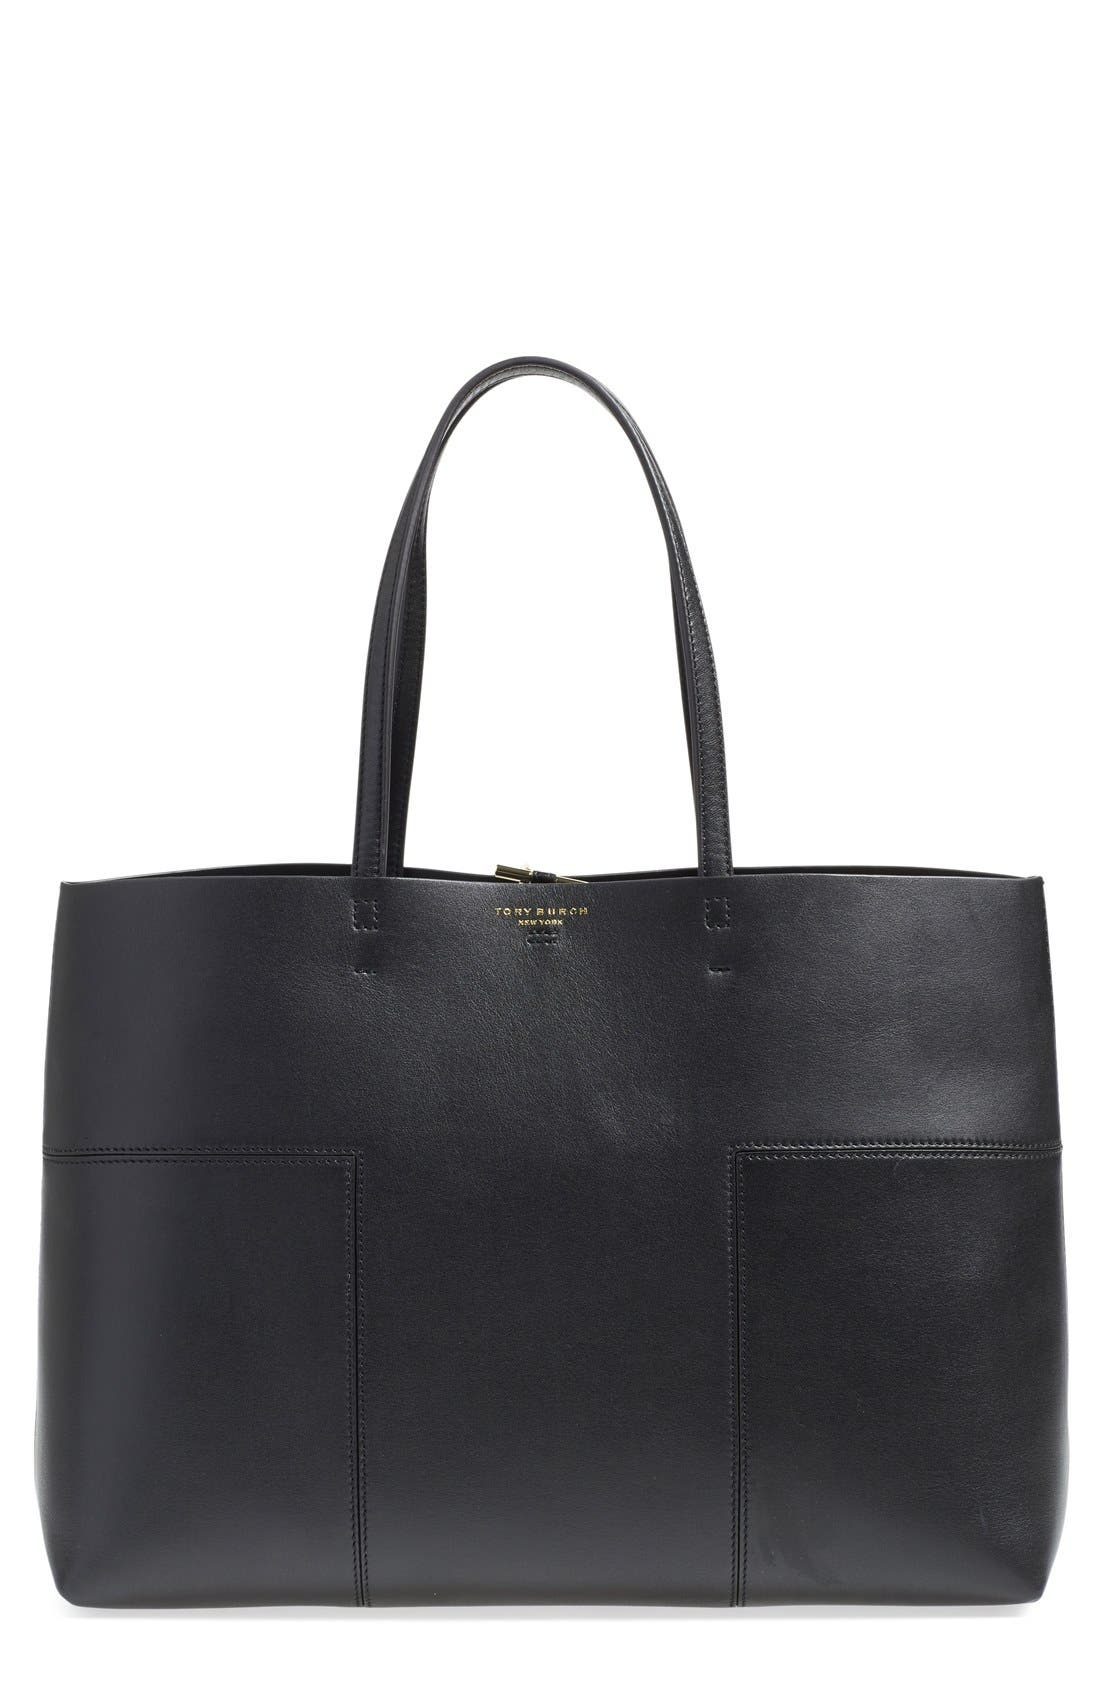 Main Image - Tory Burch 'Block-T' Leather Tote